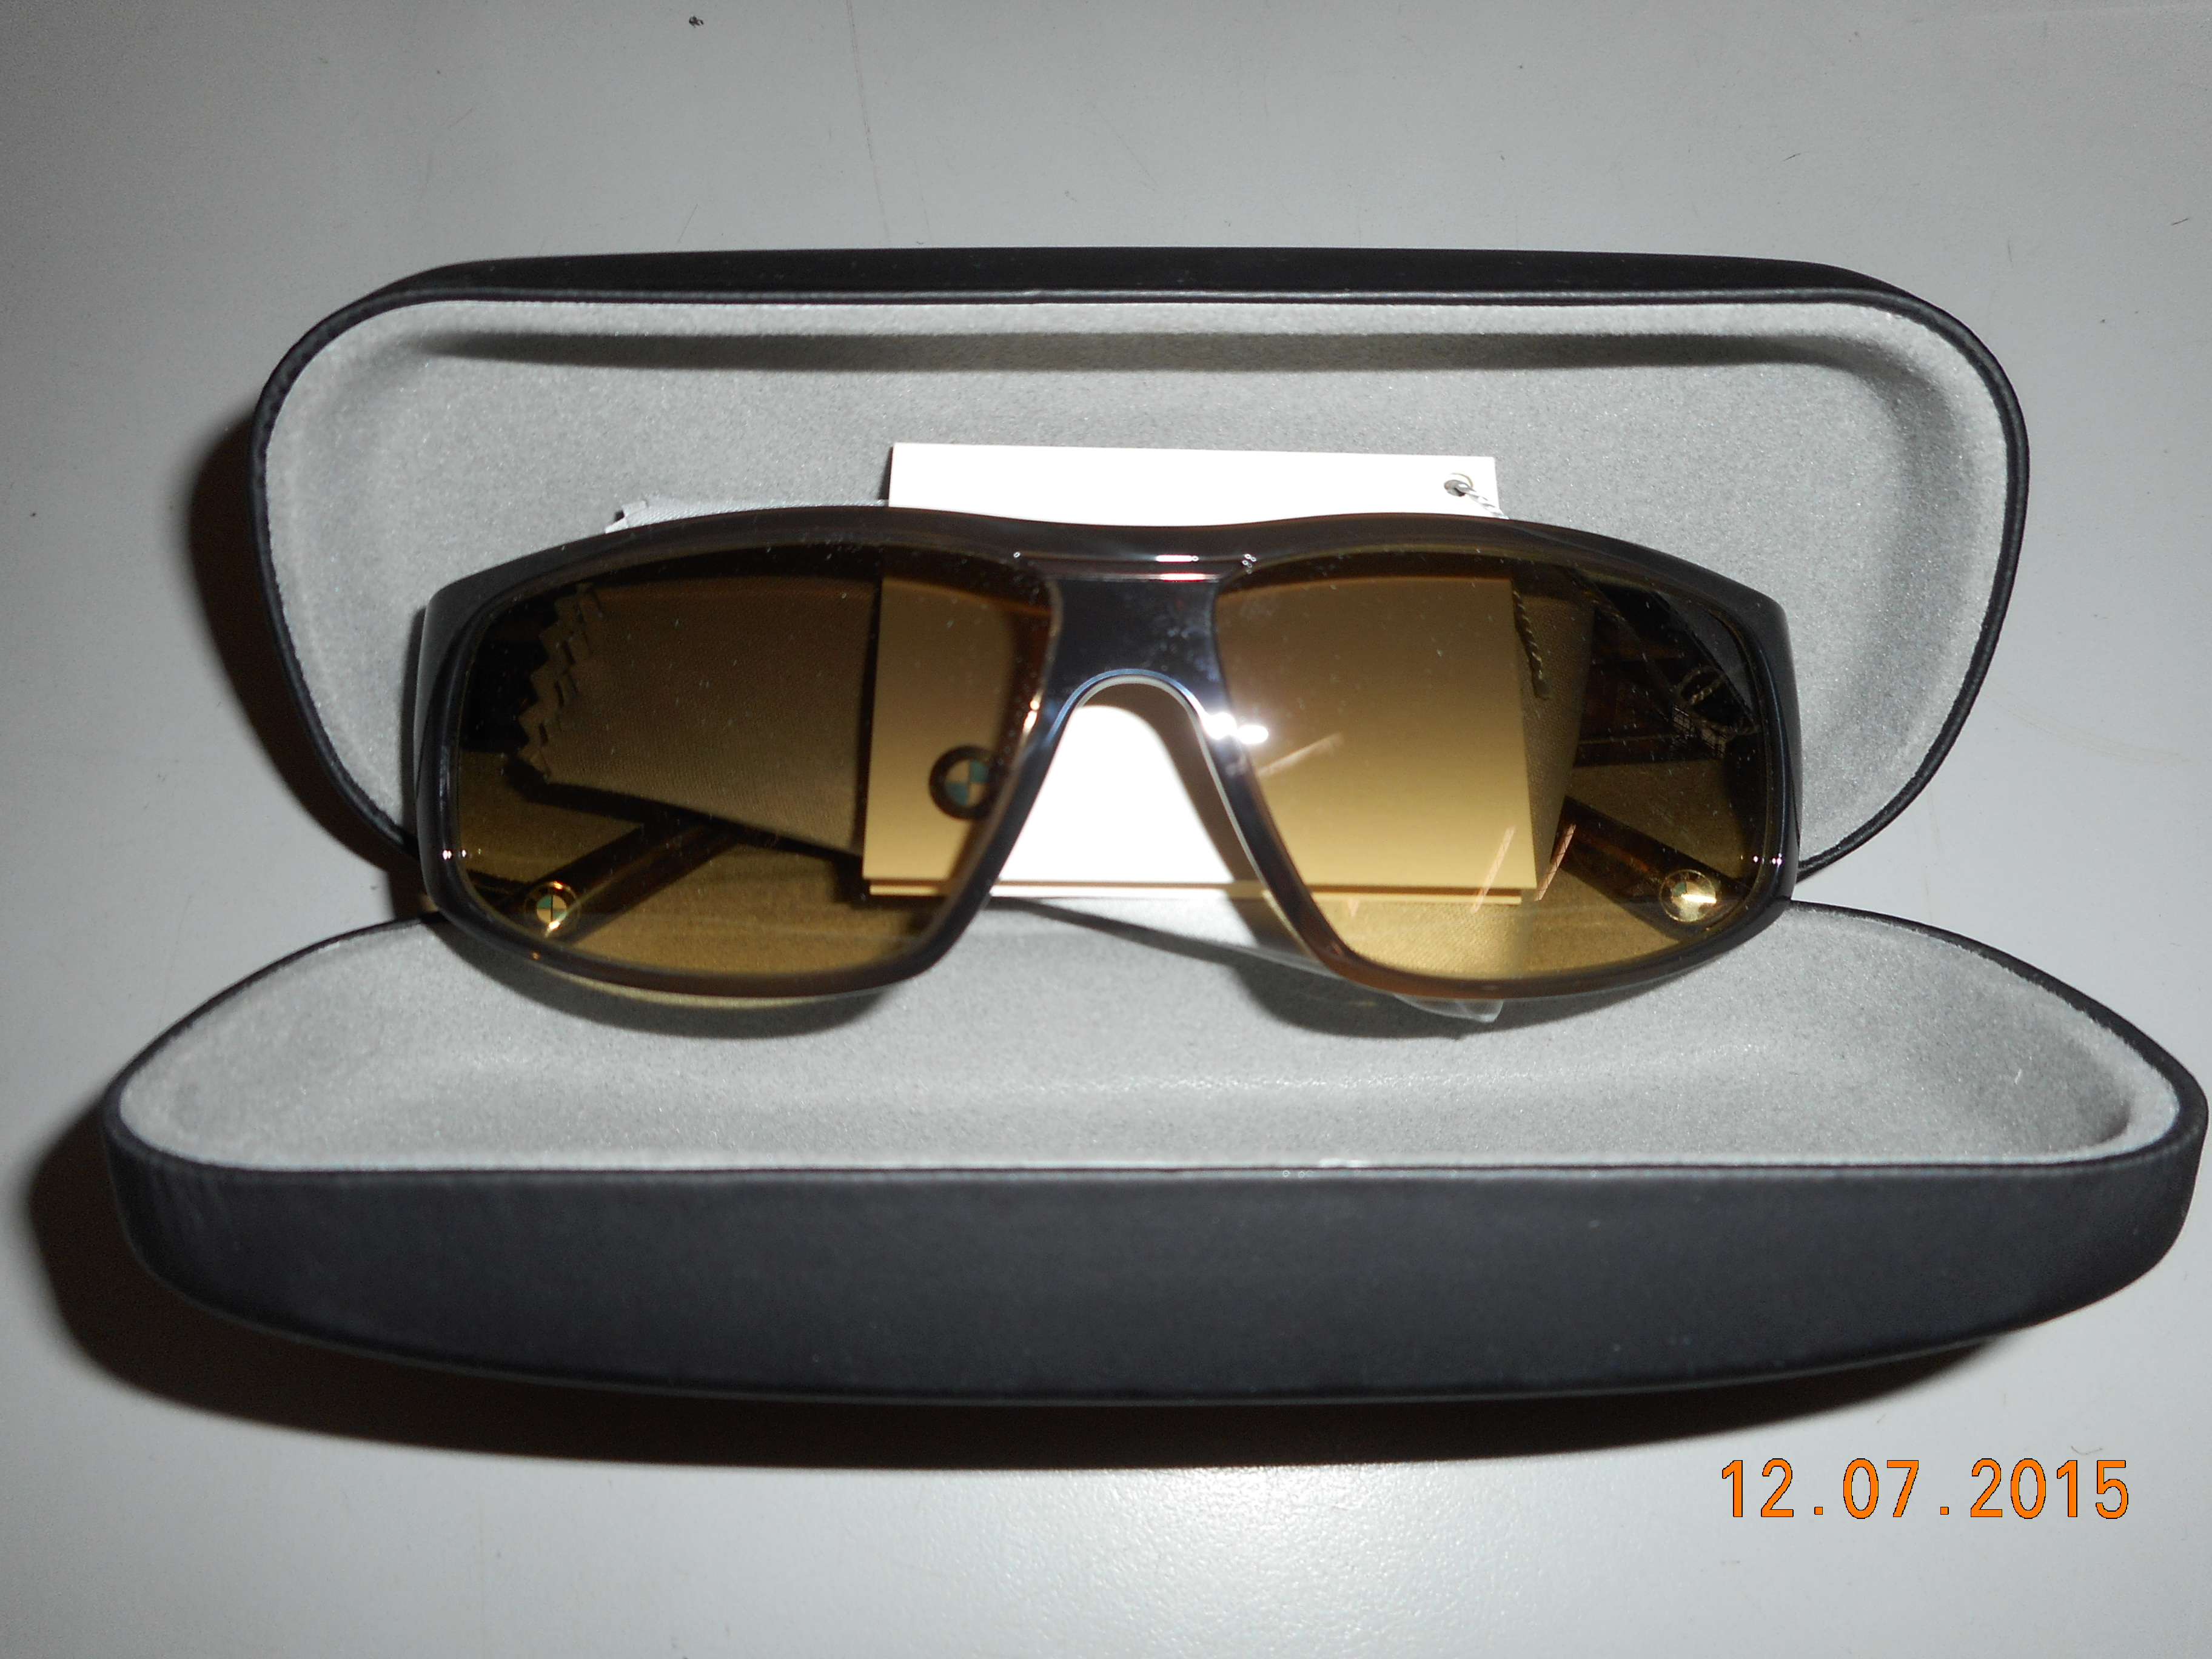 attached new showthread images attachment forums bmw yachtsport sunglasses